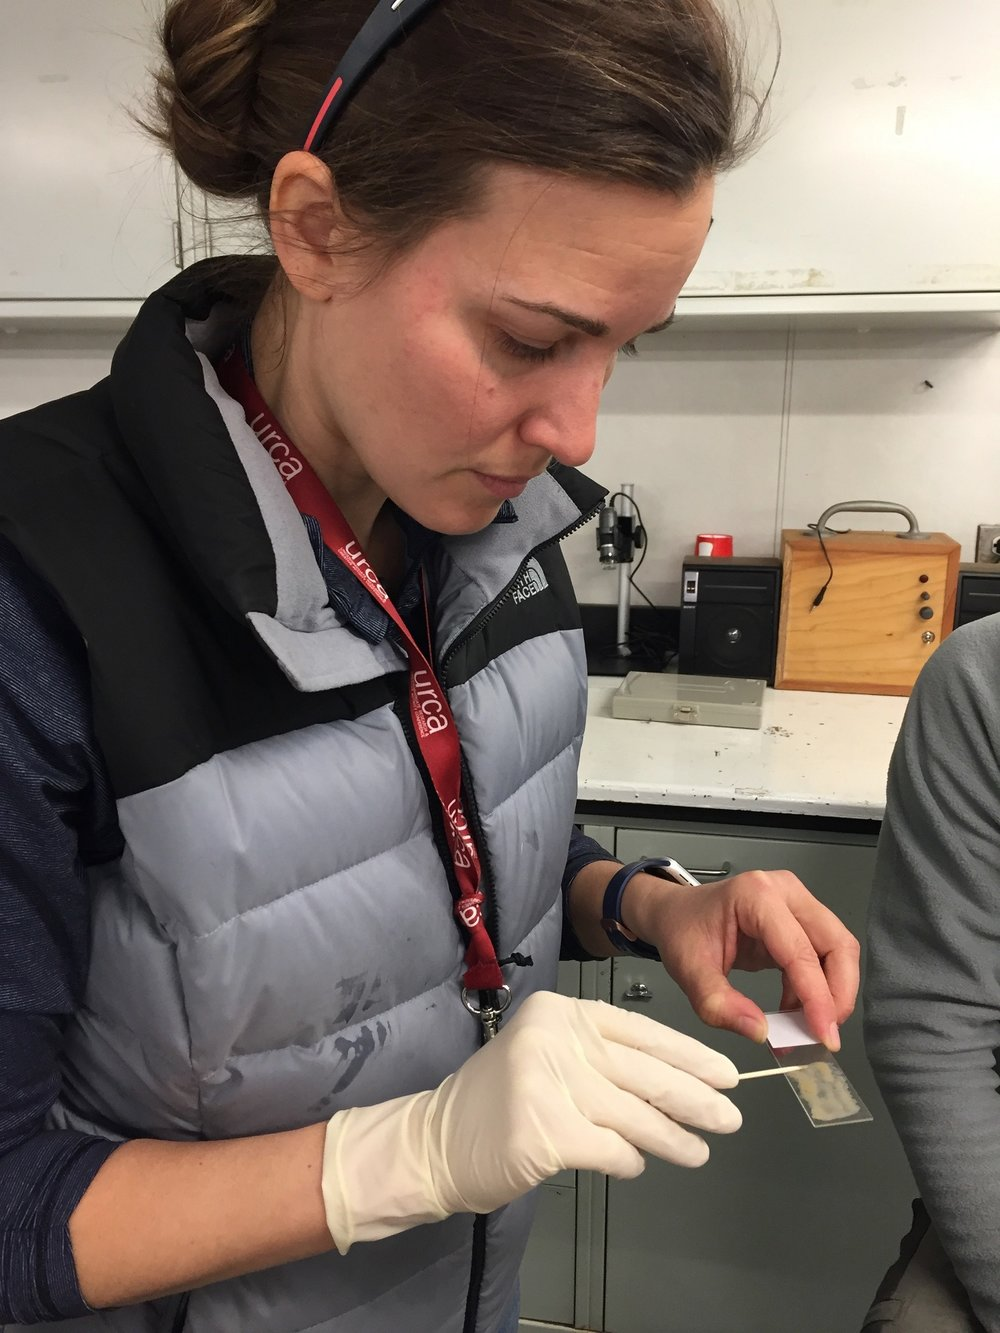 Becky Minzoni demonstrates how to make a smear slide. Smear slides are made to look at diatoms (microalgae that live near the surface of the ocean).